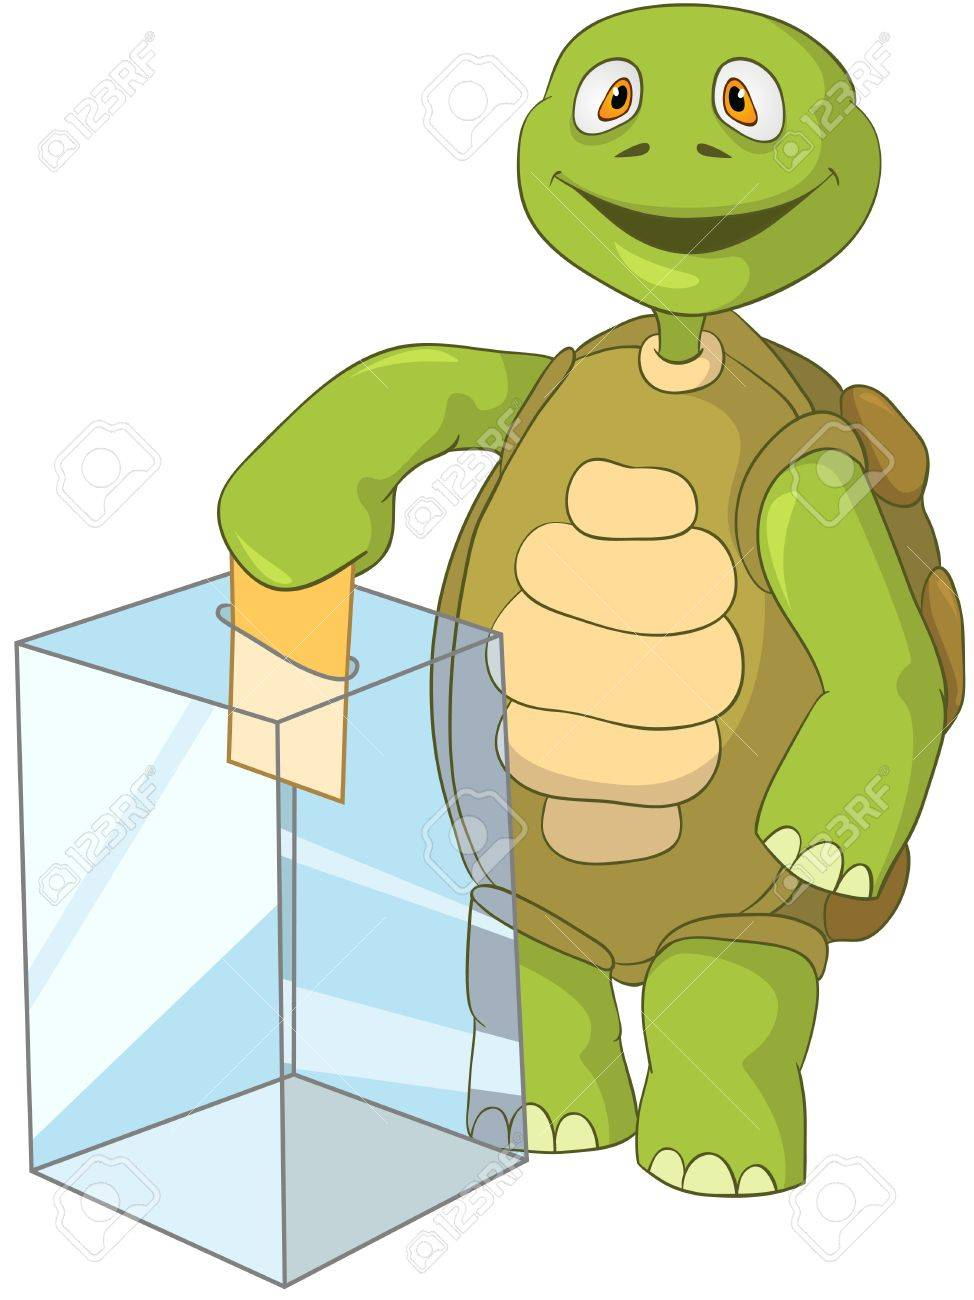 Cartoon Character Funny Turtle Isolated on White Background. Election. Stock Vector - 14455917